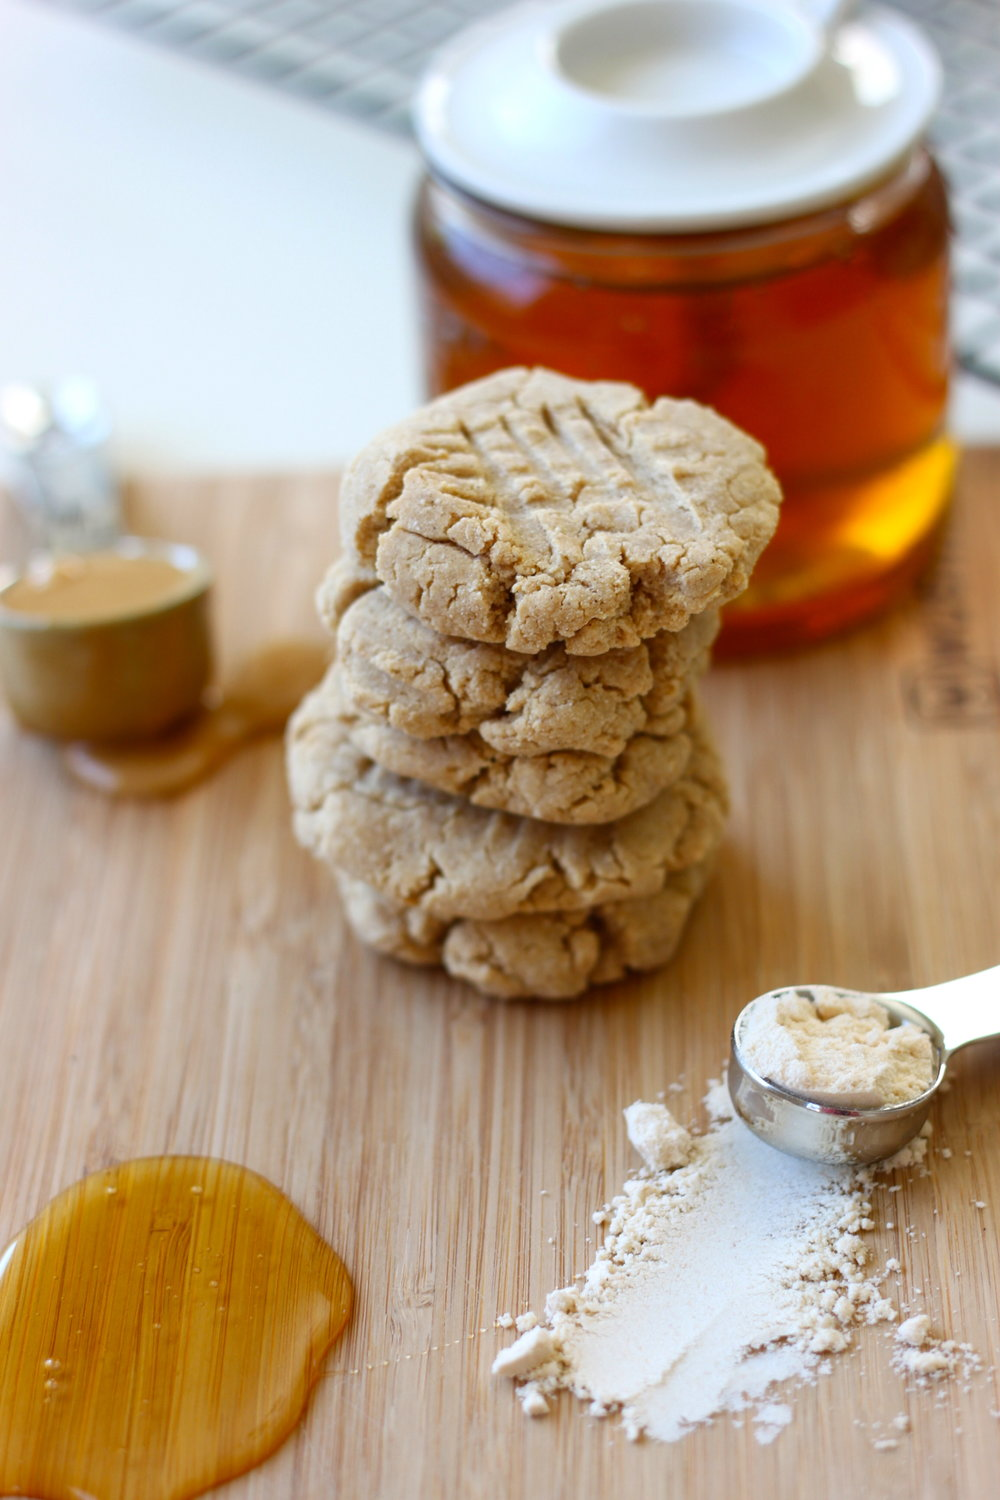 Grain Free Peanut Butter Cookies from The Diva Dish